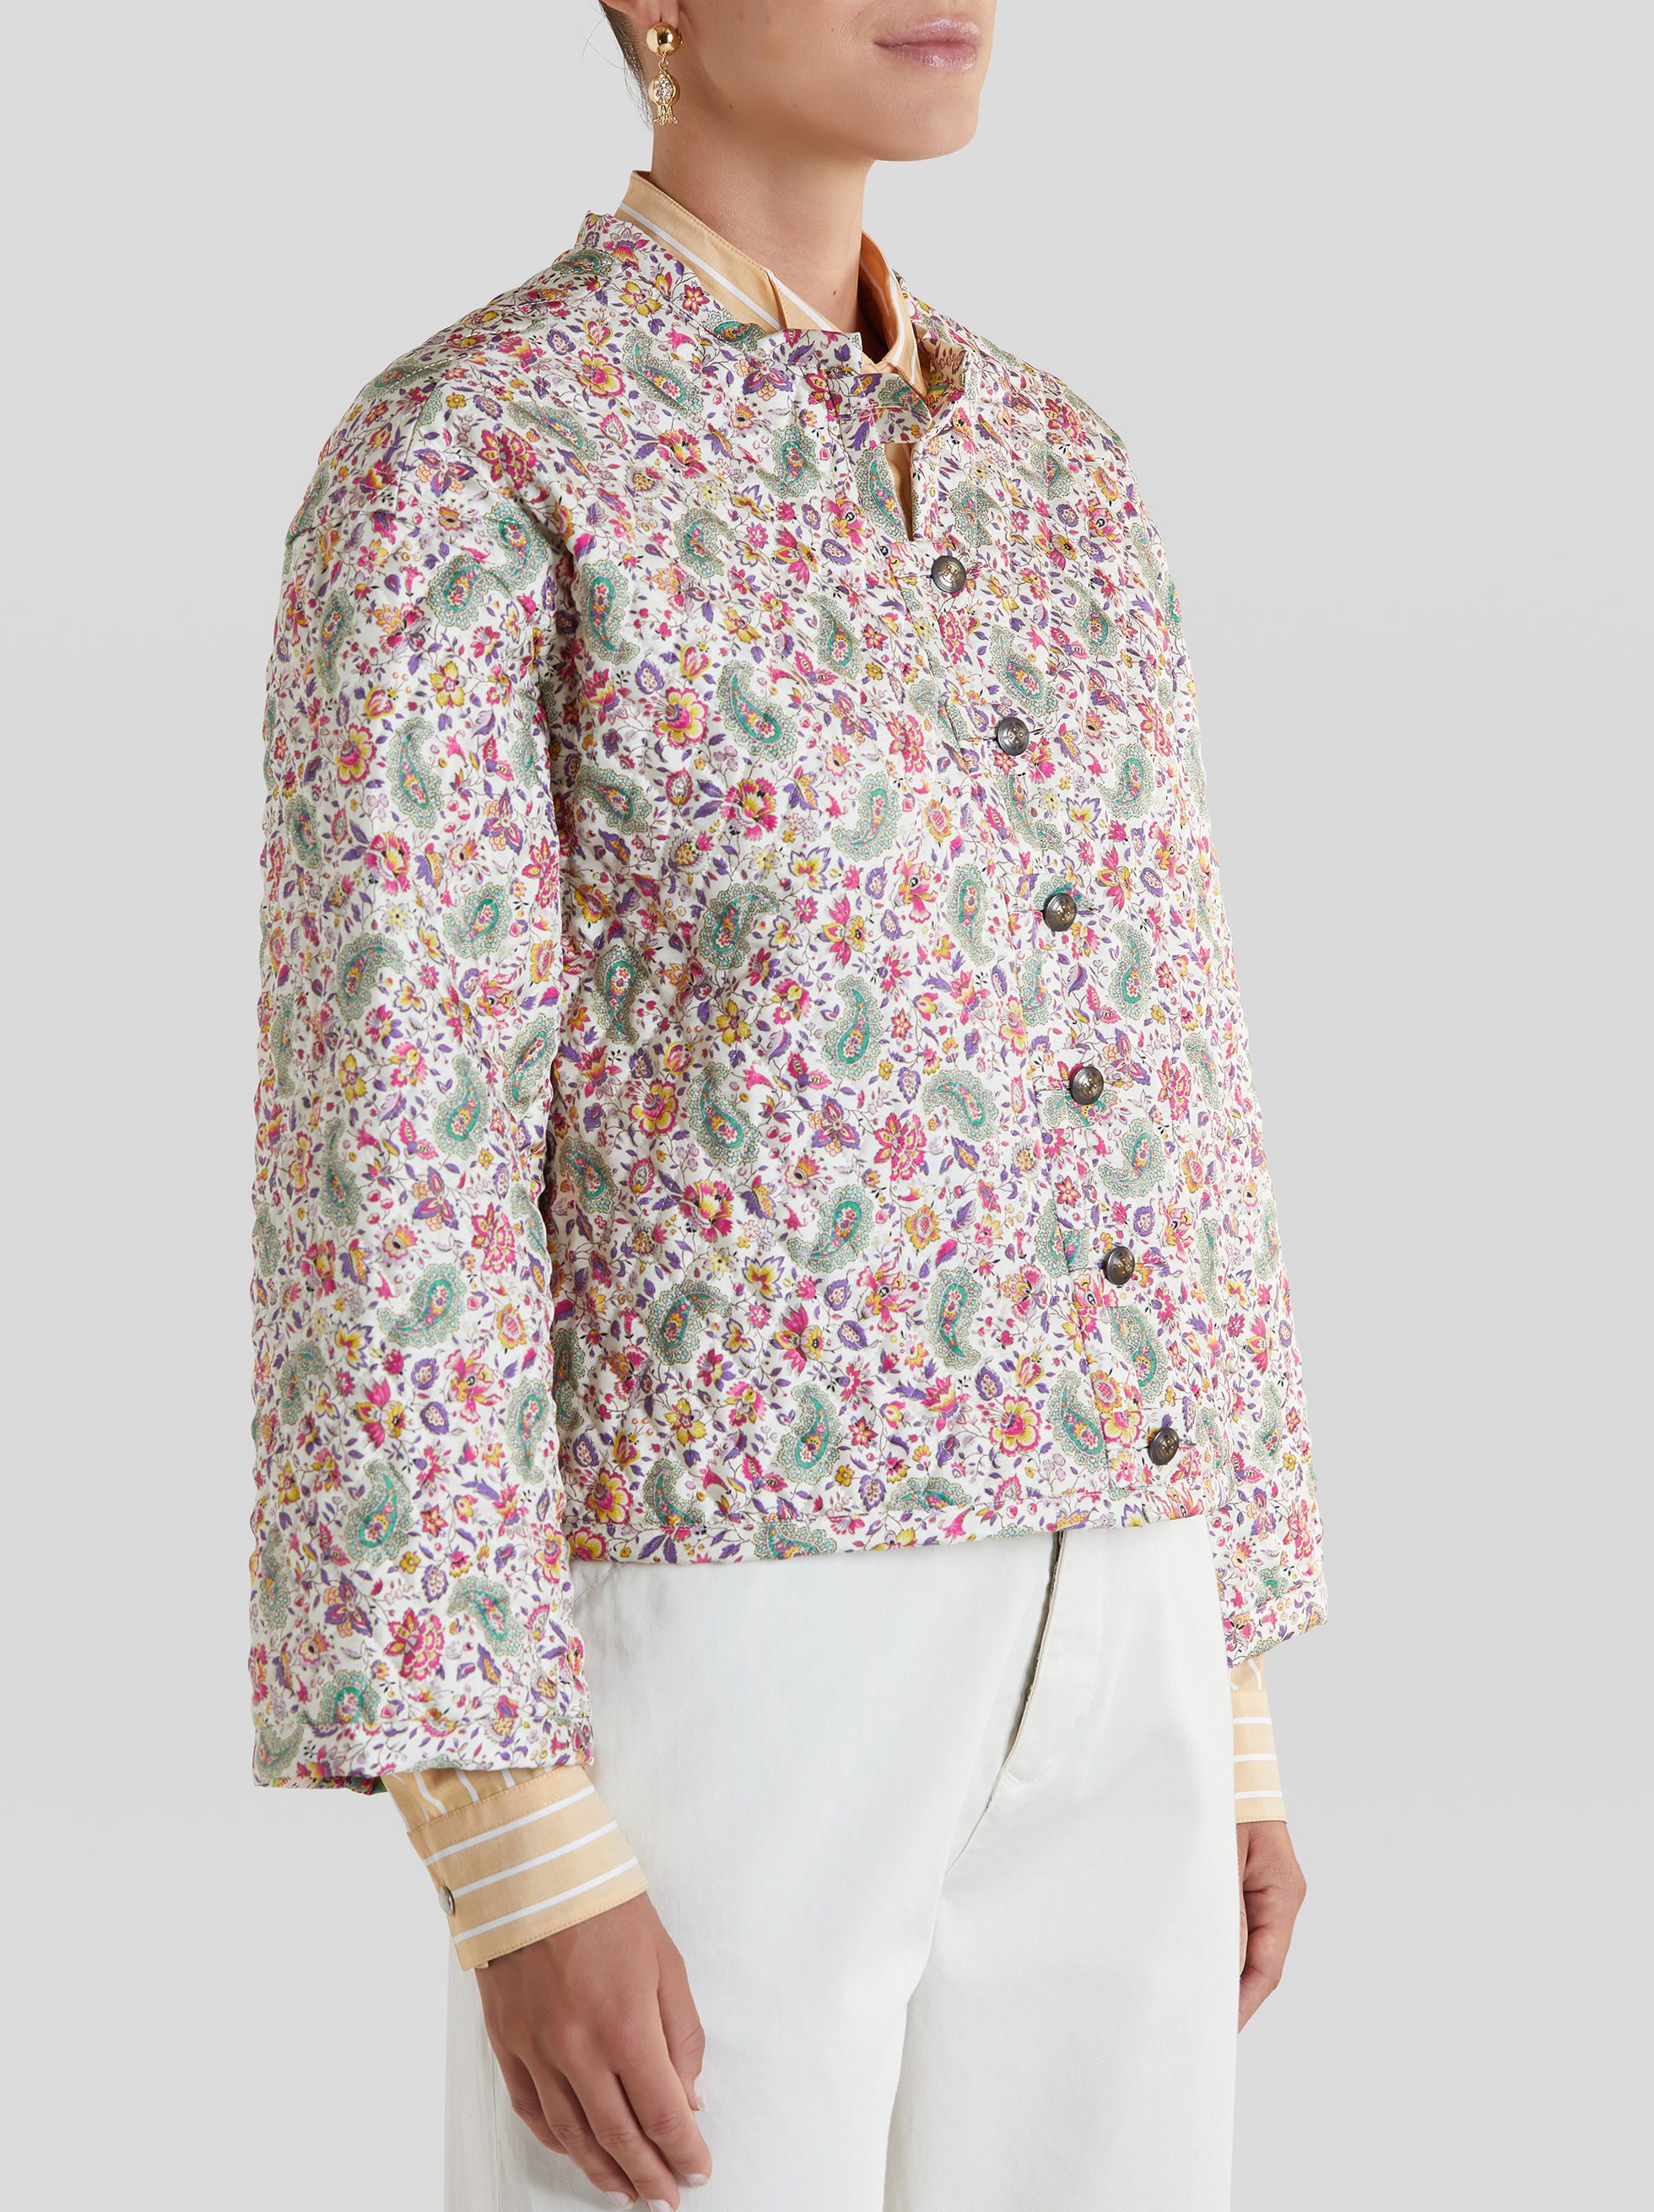 QUILTED JACKET WITH FLORAL PAISLEY PATTERN